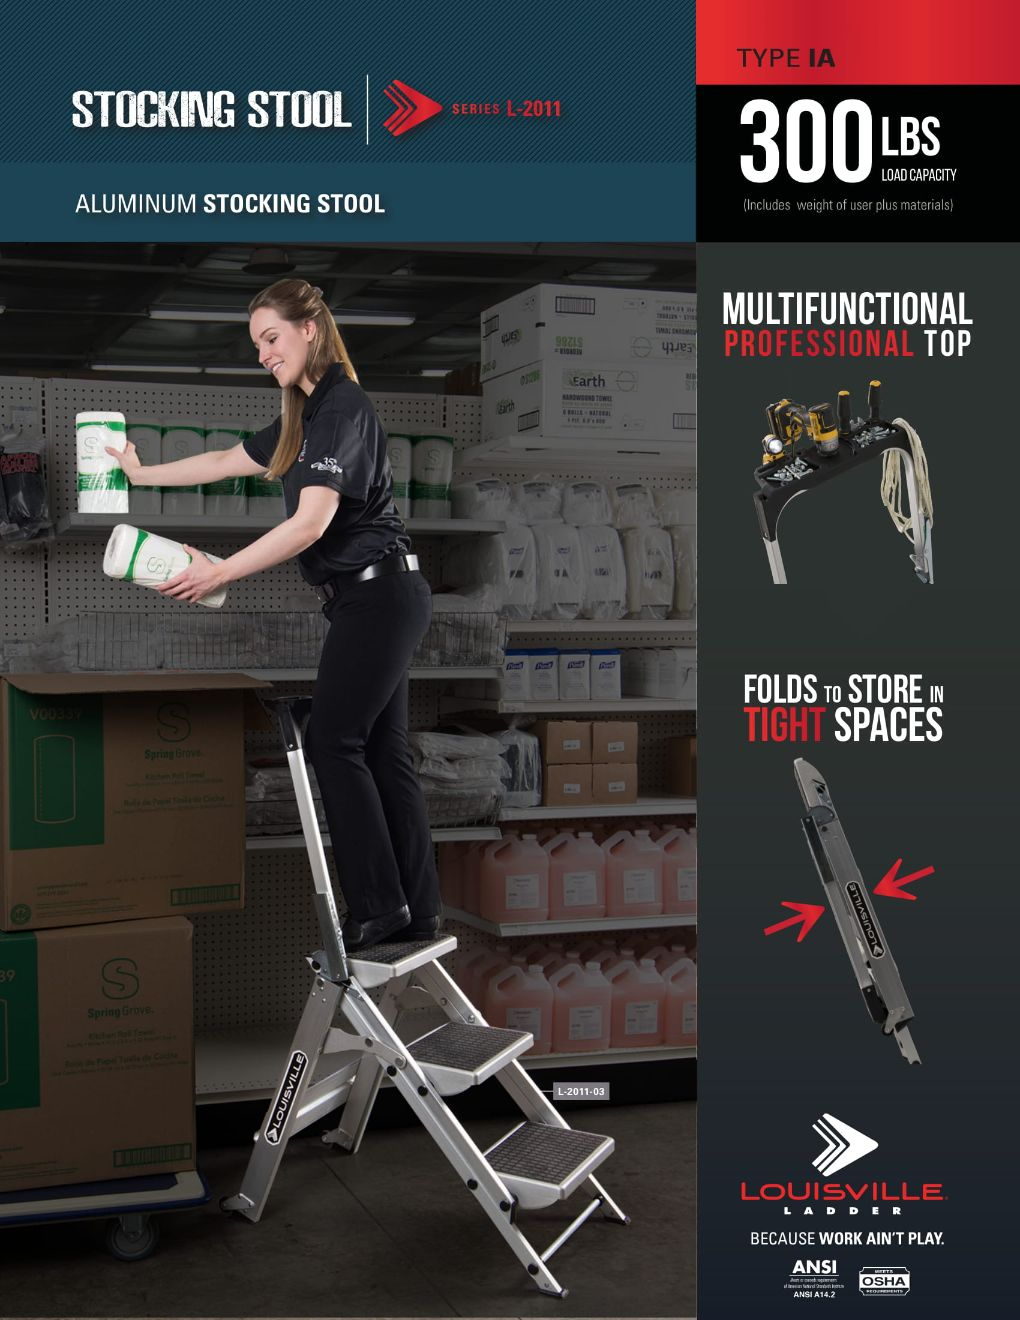 L-2011 Stocking Stool Flyer and Spec Sheet Marketing Material Image